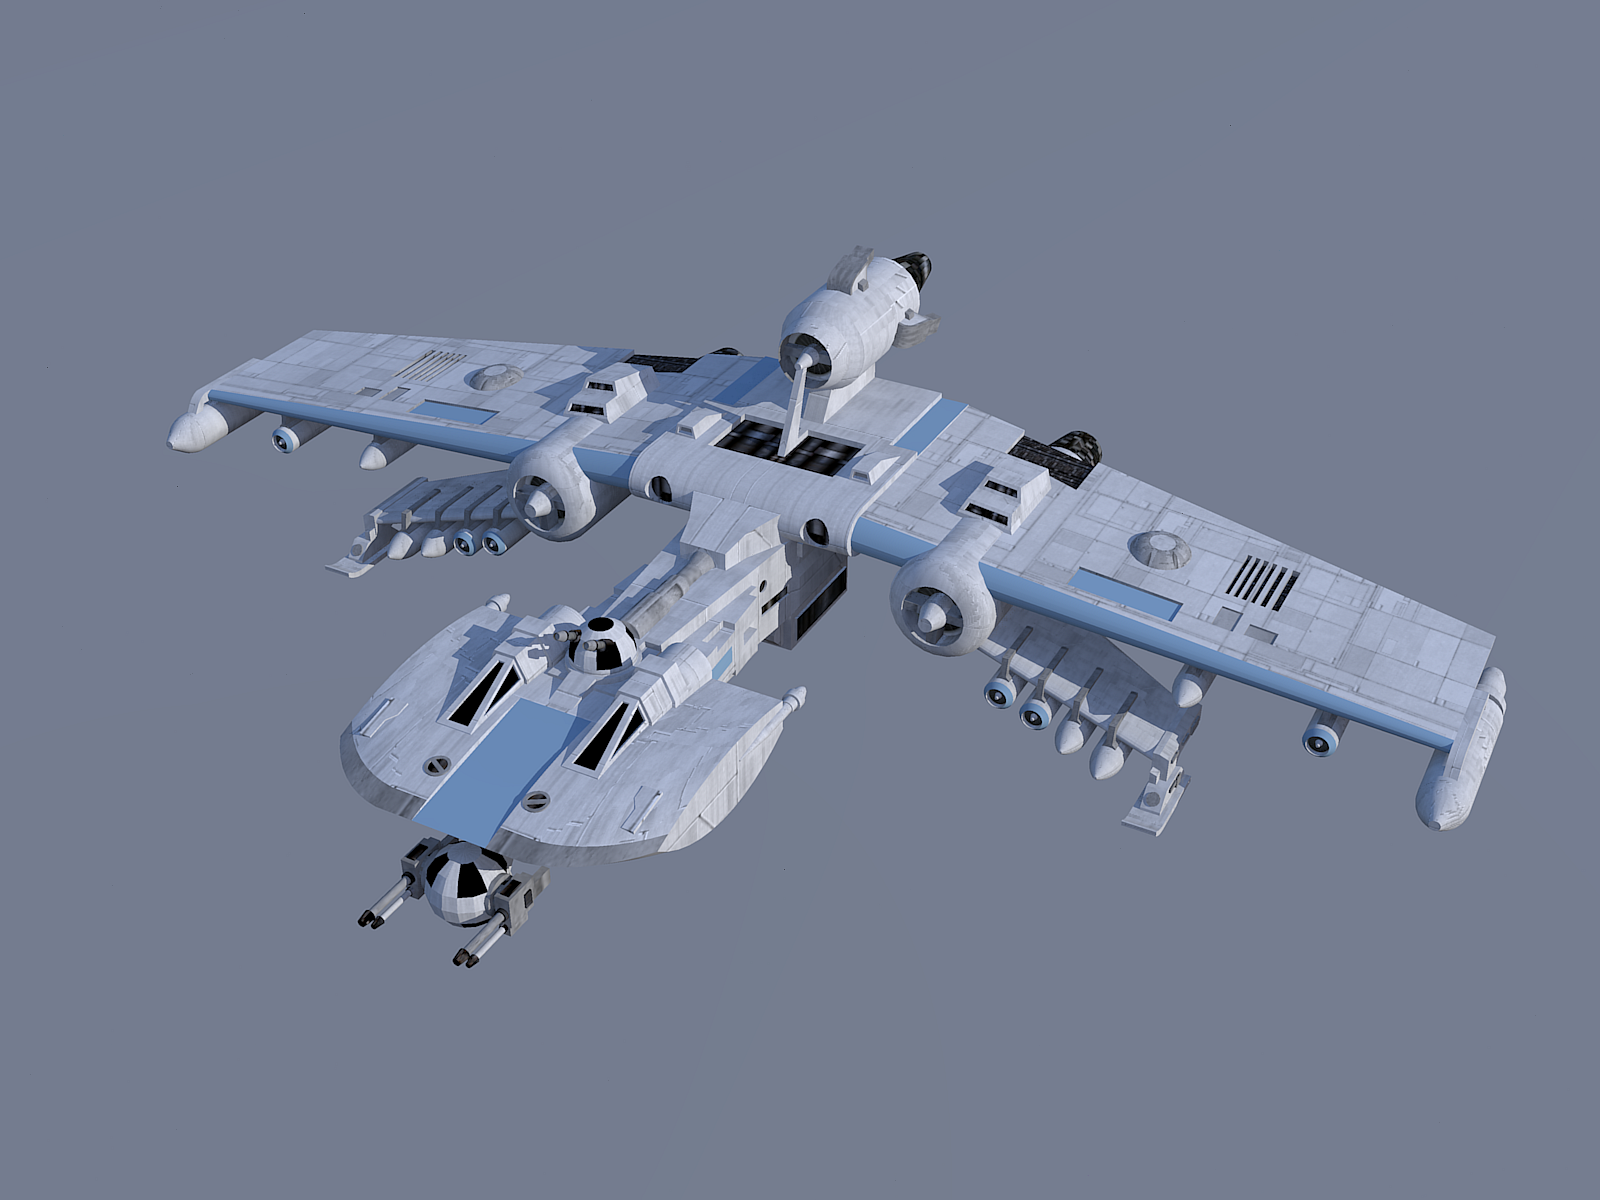 K-wing model and render